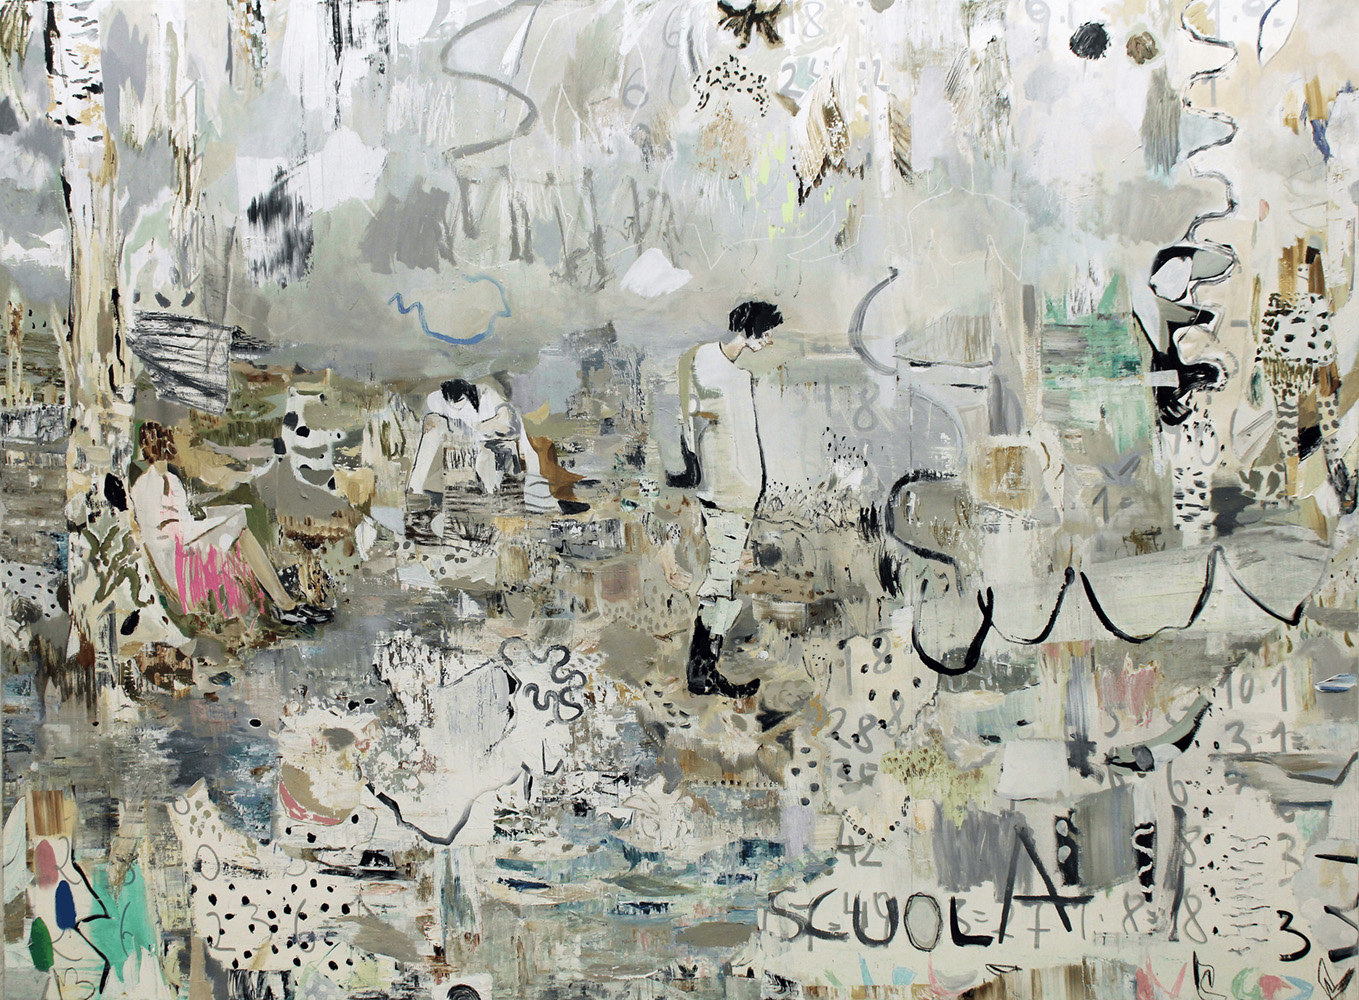 Kevin A. Rausch | Class Bunkers, mixed media on canvas – 200 x 270 cm, 2016